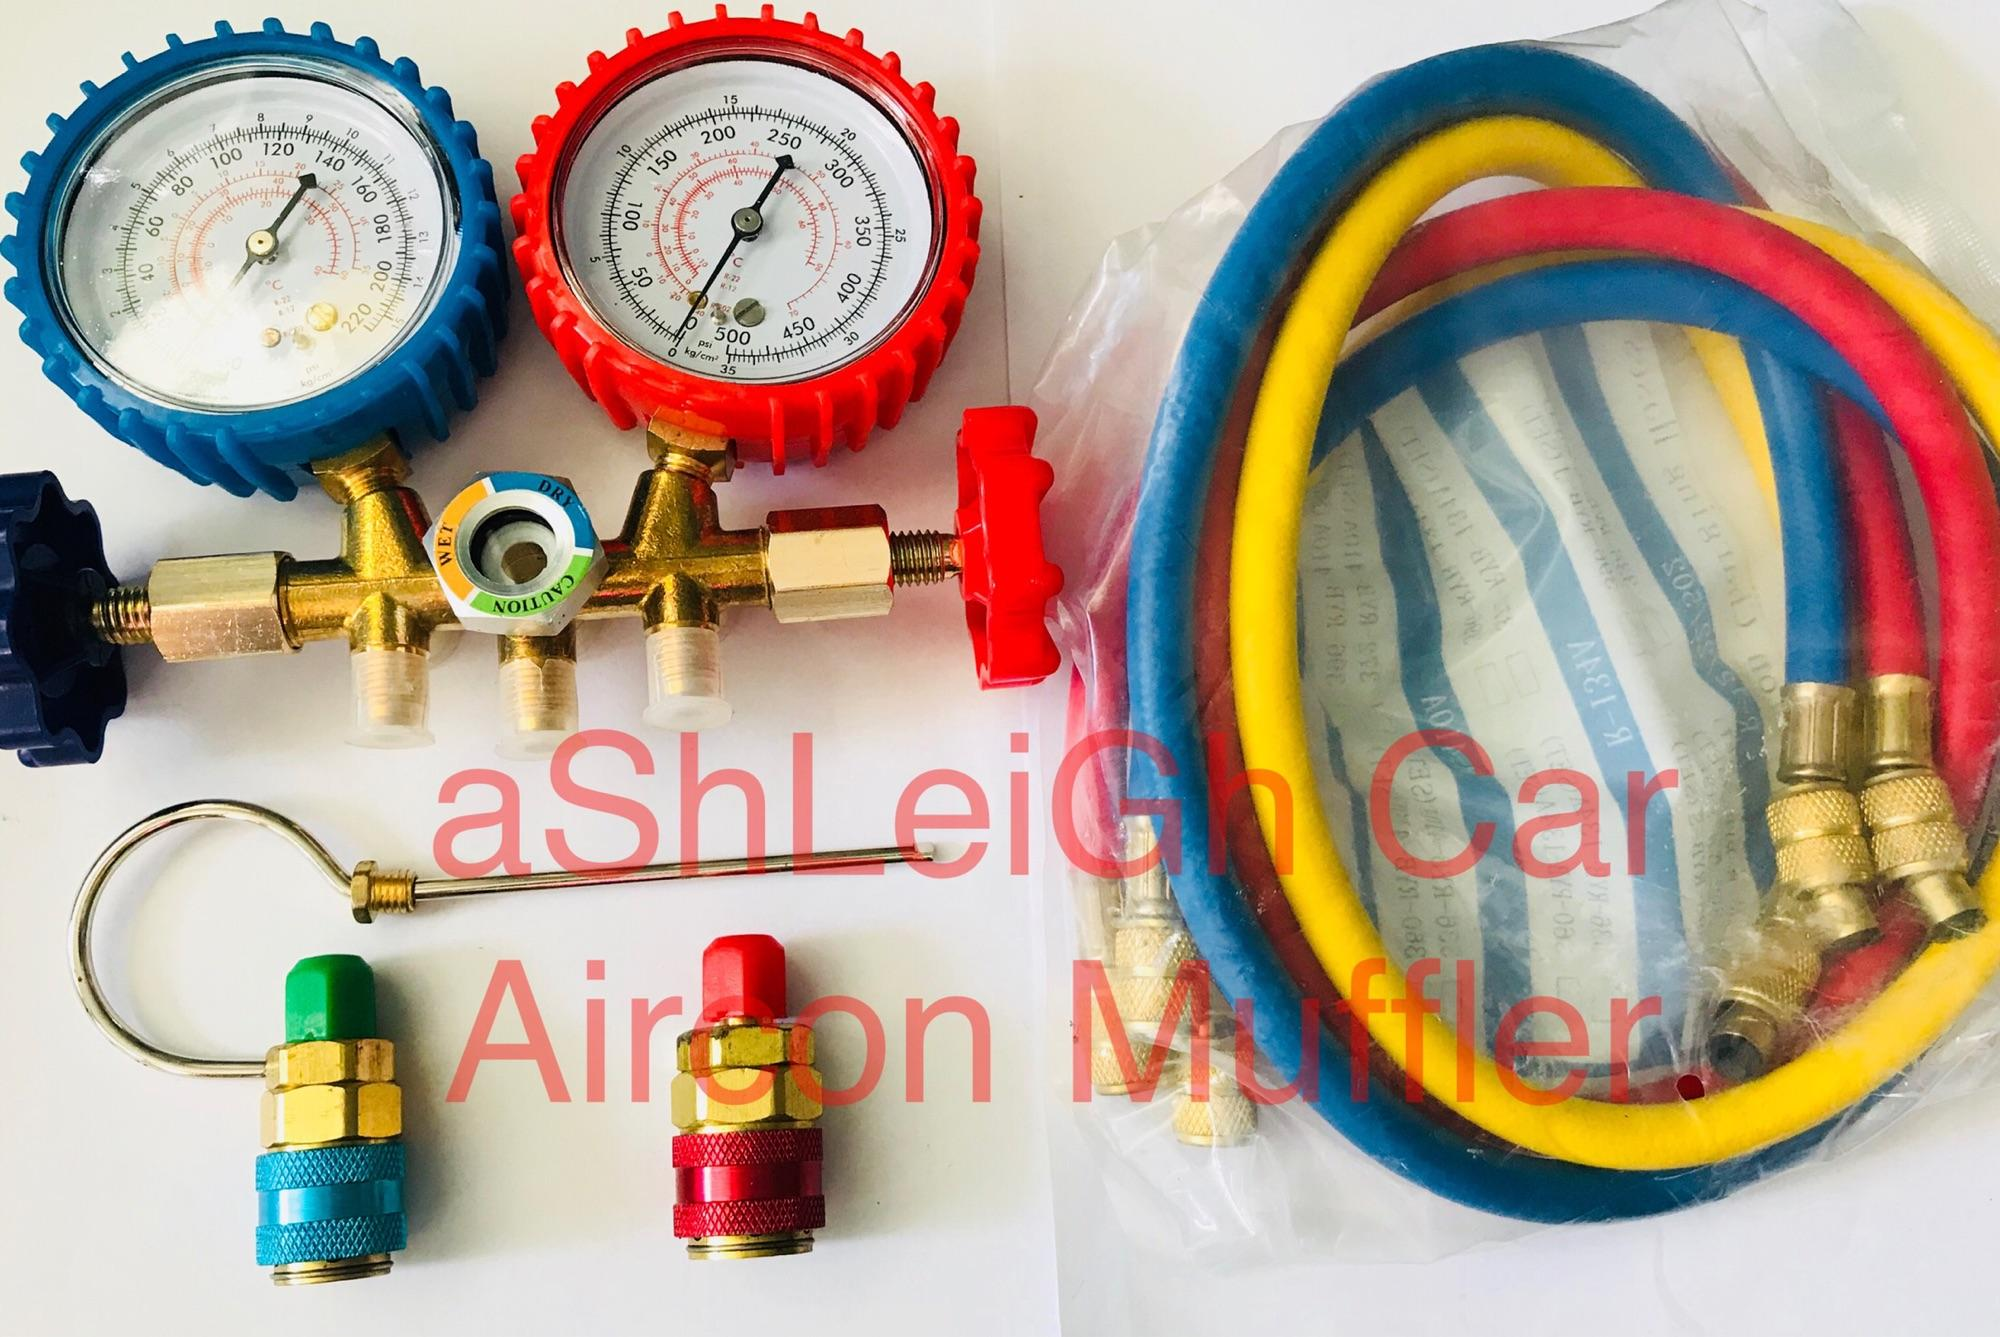 Toyota Philippines Price List Car Parts Accessories For 99 Camry Fuel Filter Location Air Conditioning